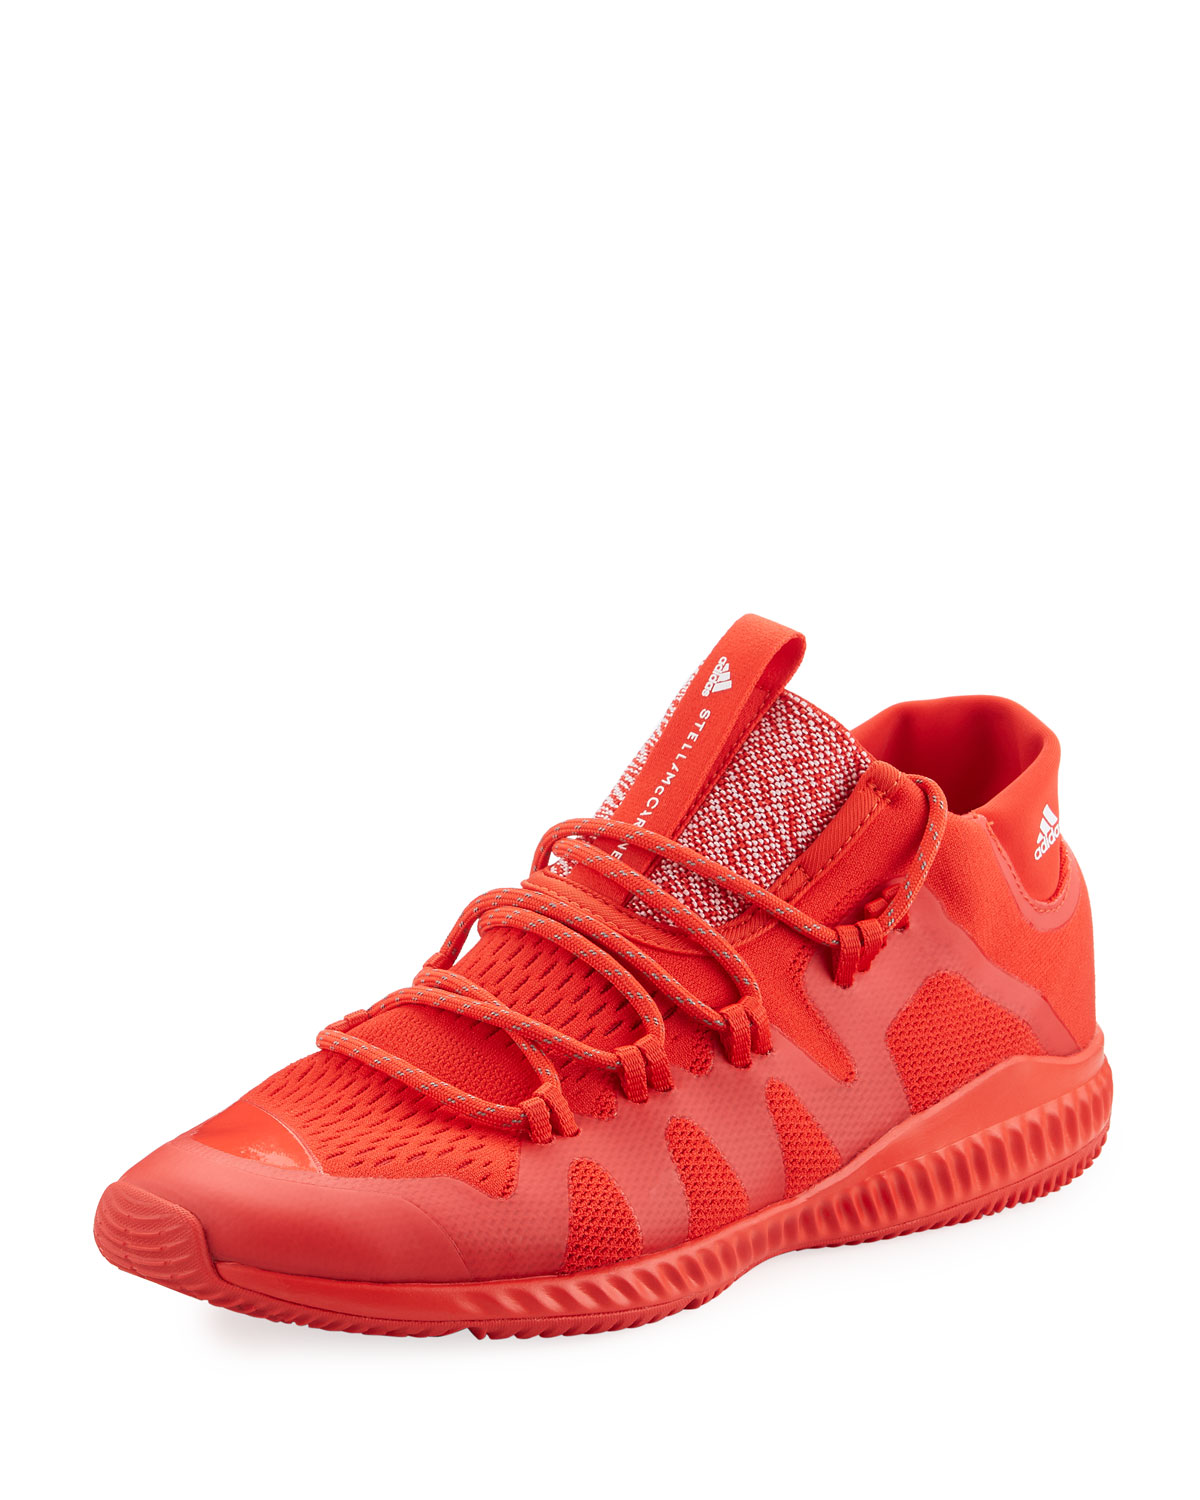 reputable site 62dc1 62e29 adidas by Stella McCartneyCrazyTrain Bounce Mid-Top Fabric Trainer Sneaker,  Bright Red